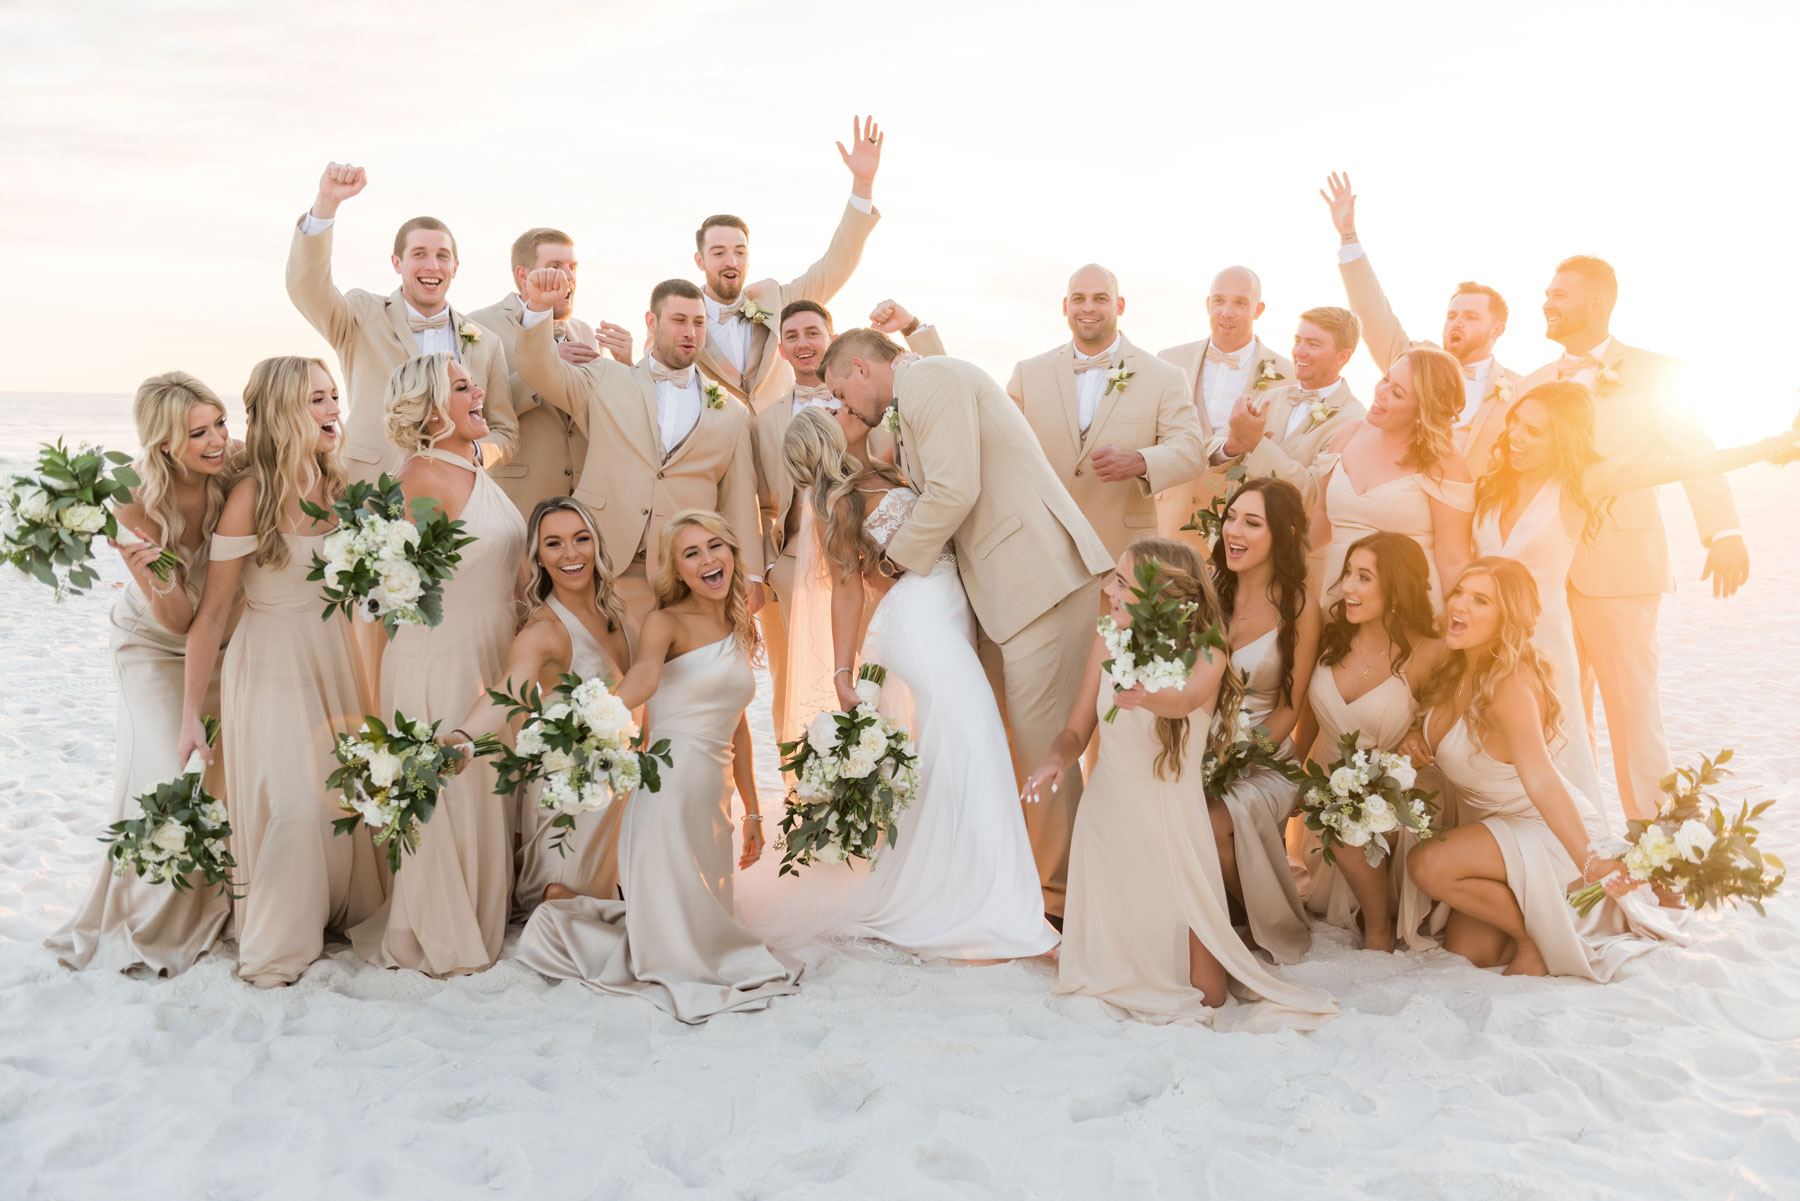 Bride and groom on the beach at sunset with fun wedding party cheering